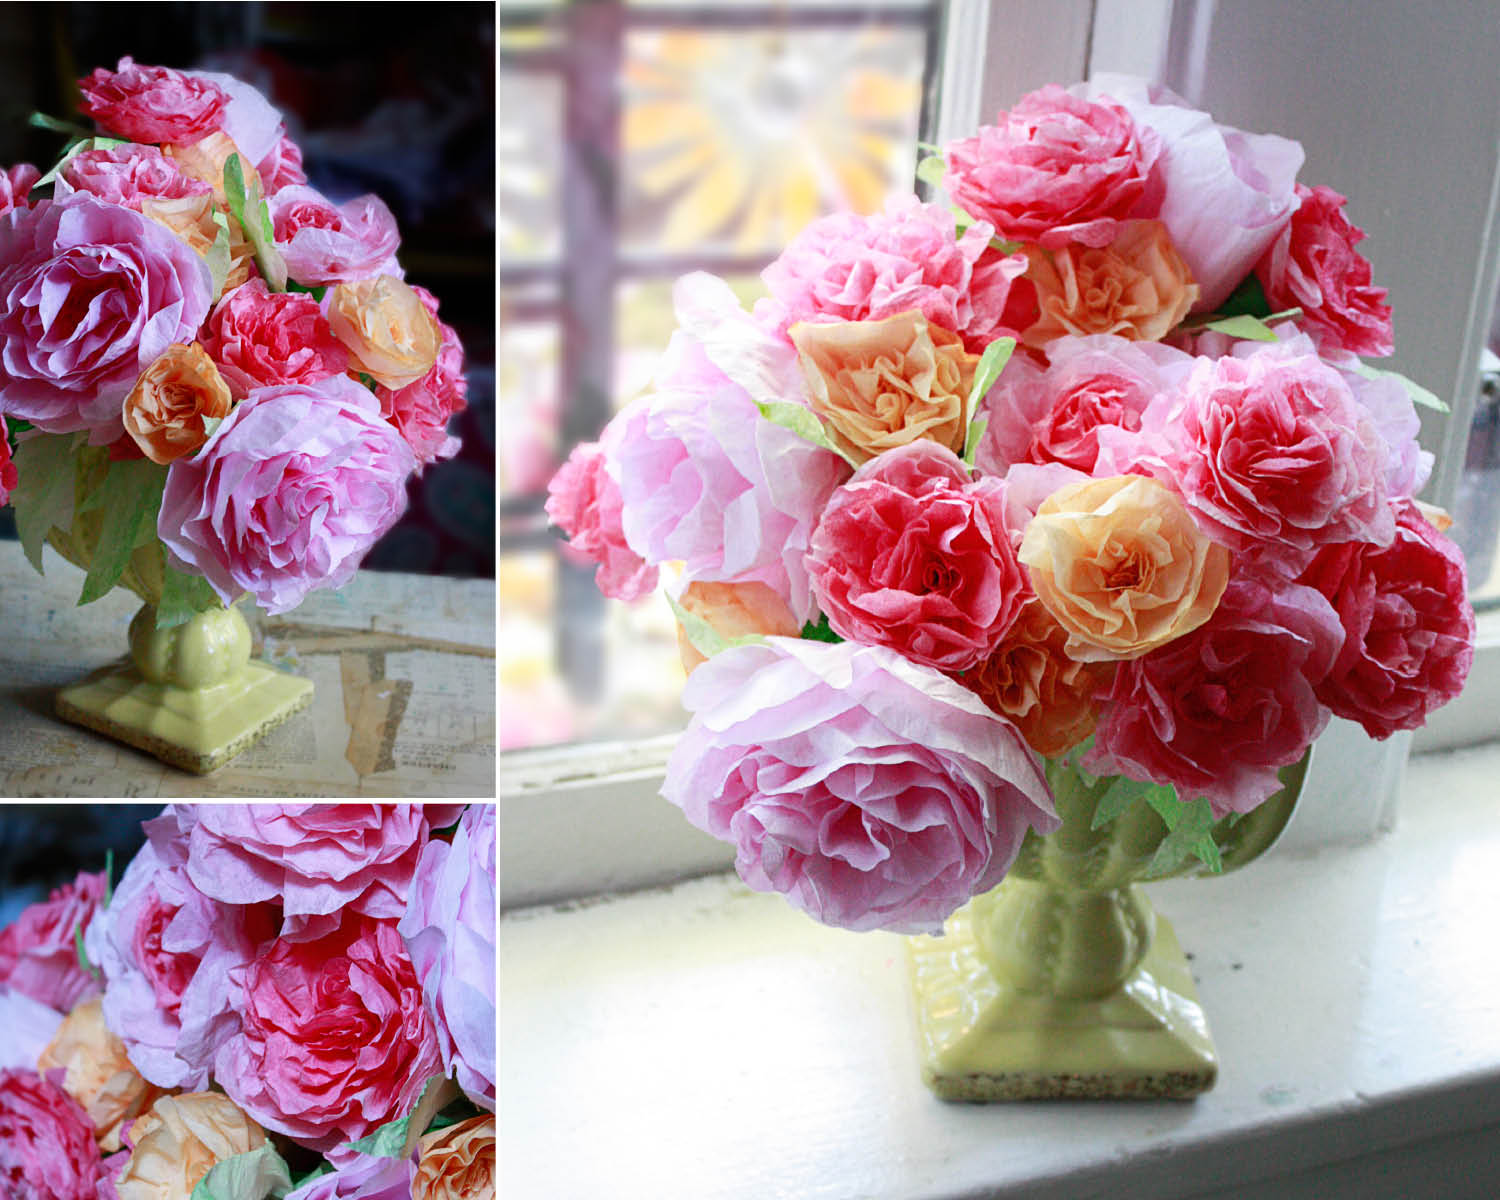 Coffee filter roses aunt peaches coffee filter roses mightylinksfo Images